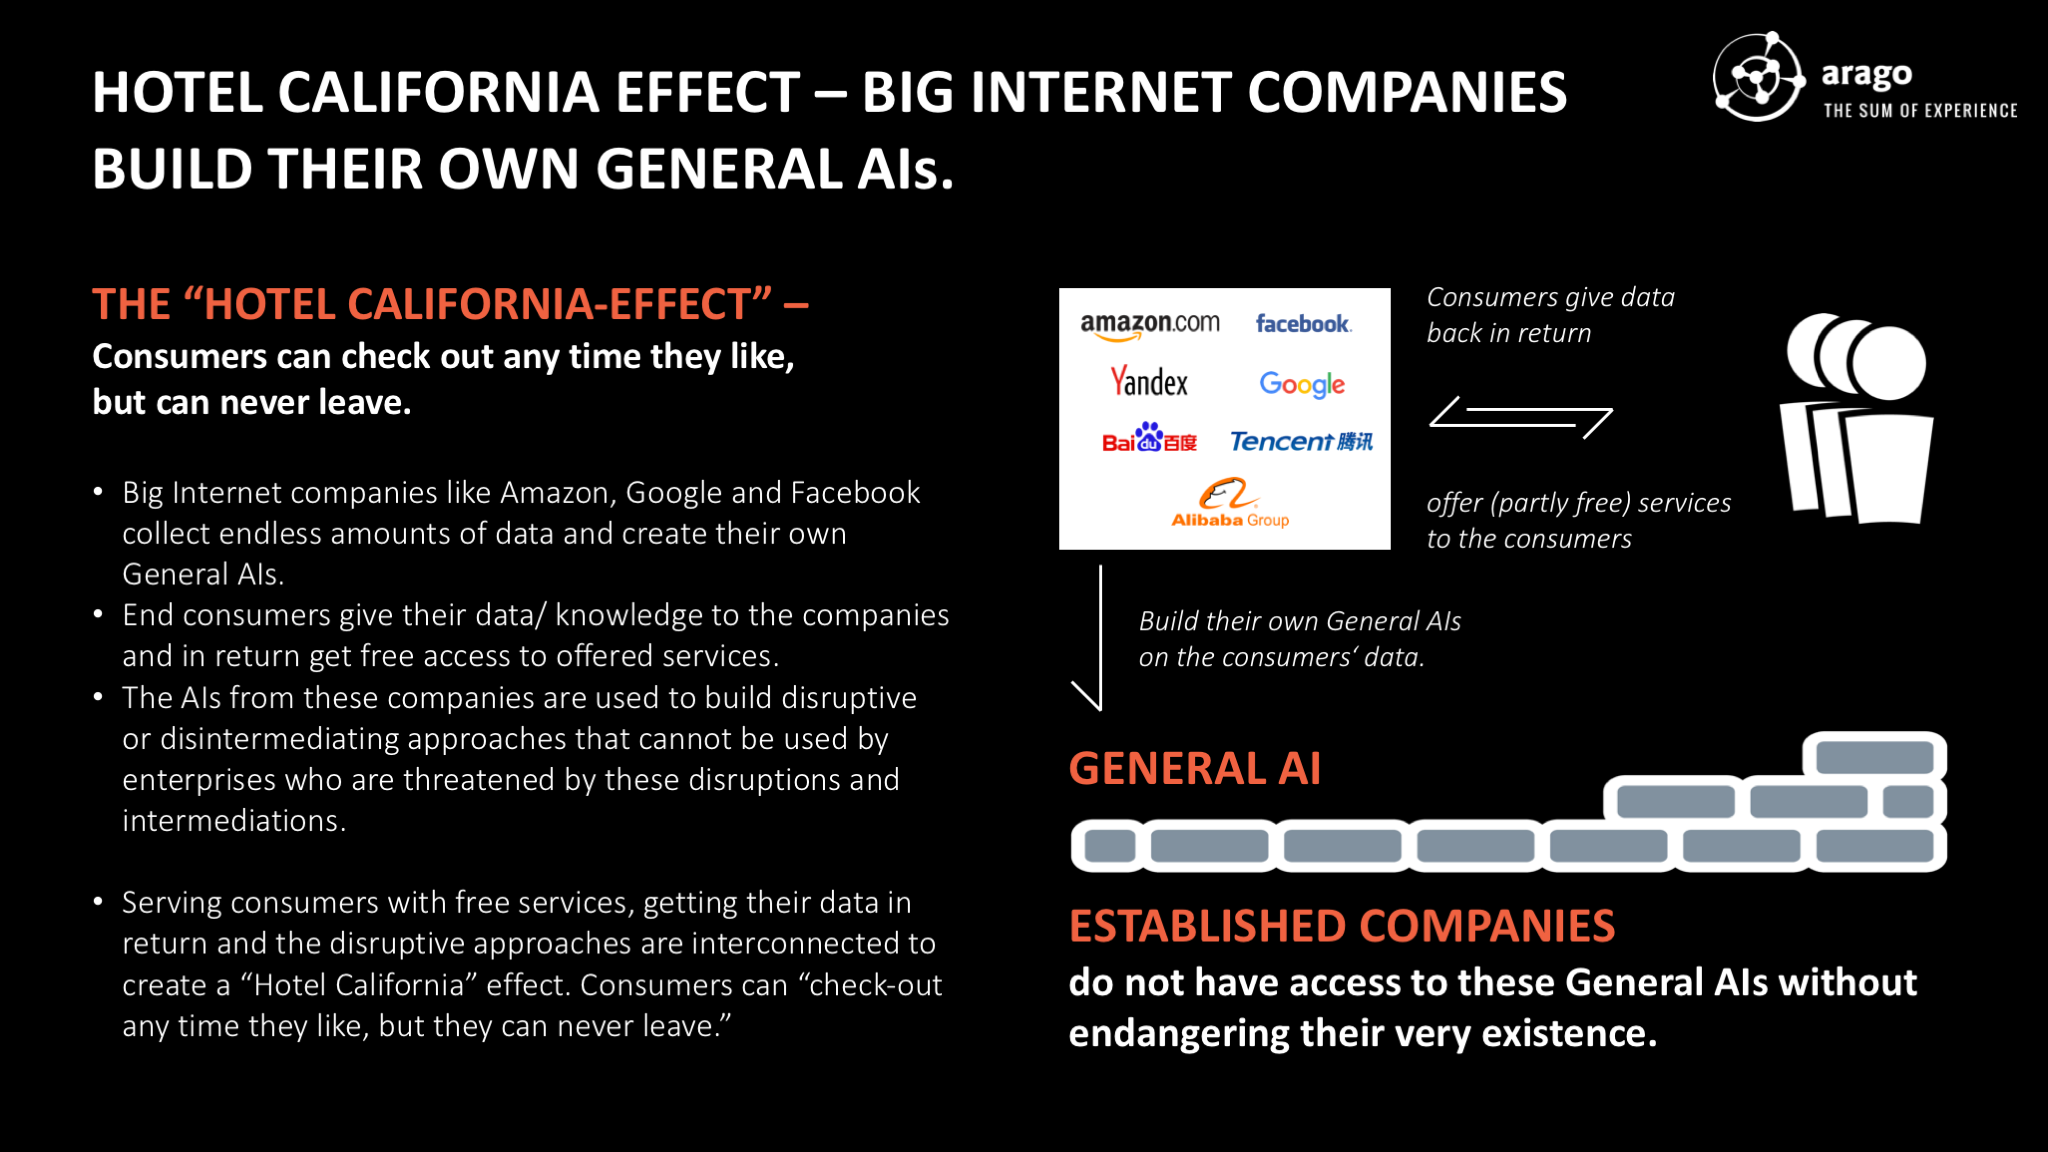 Figure: The Hotel California Effect – Big Internet Companies Build Their Own General AIs.